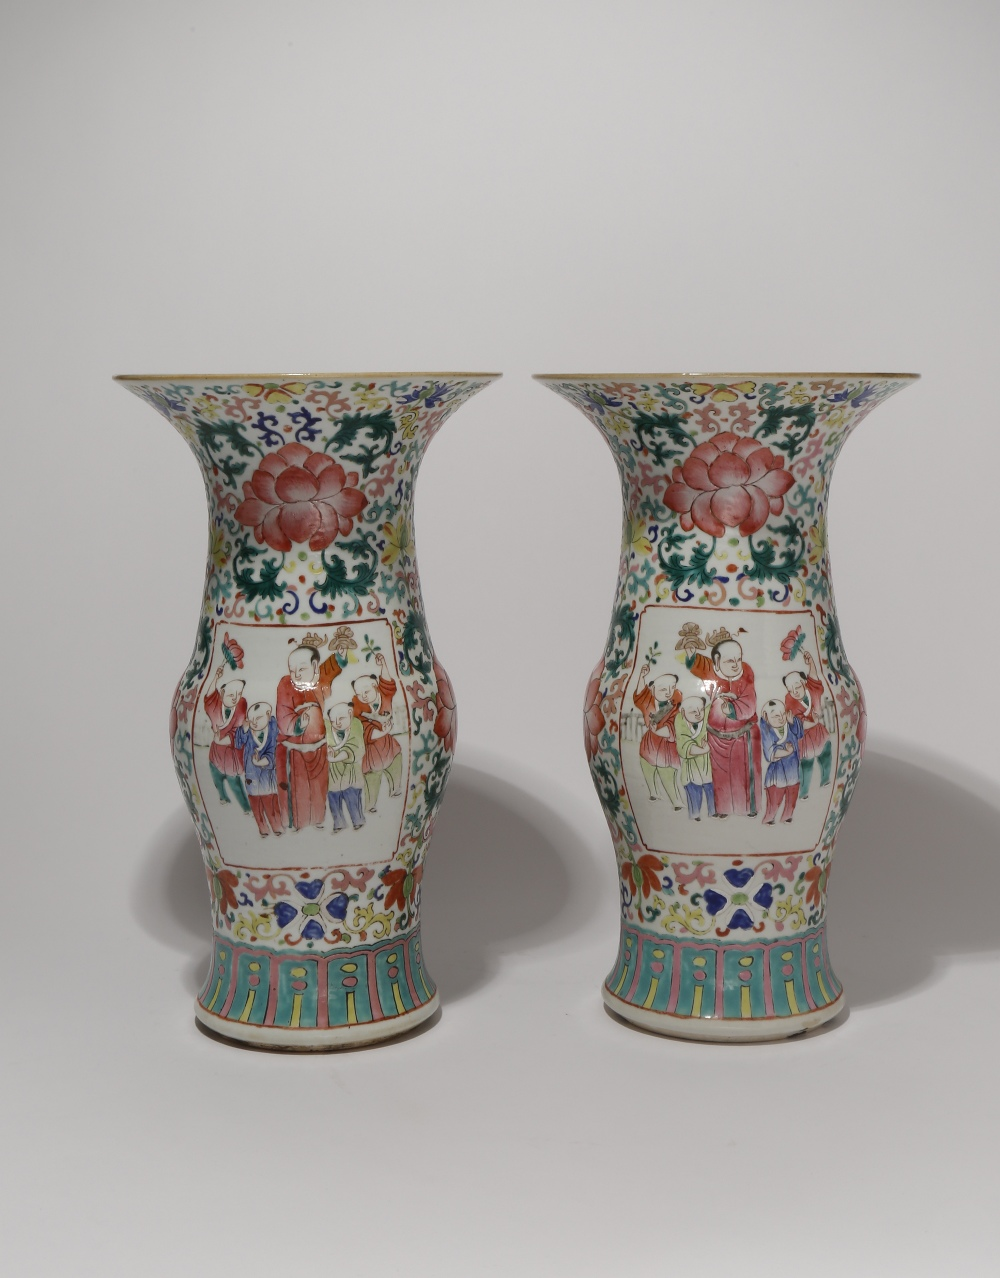 A PAIR OF CHINESE FAMILLE ROSE 'BOYS' VASES 19TH CENTURY Each painted with two rectangular panels